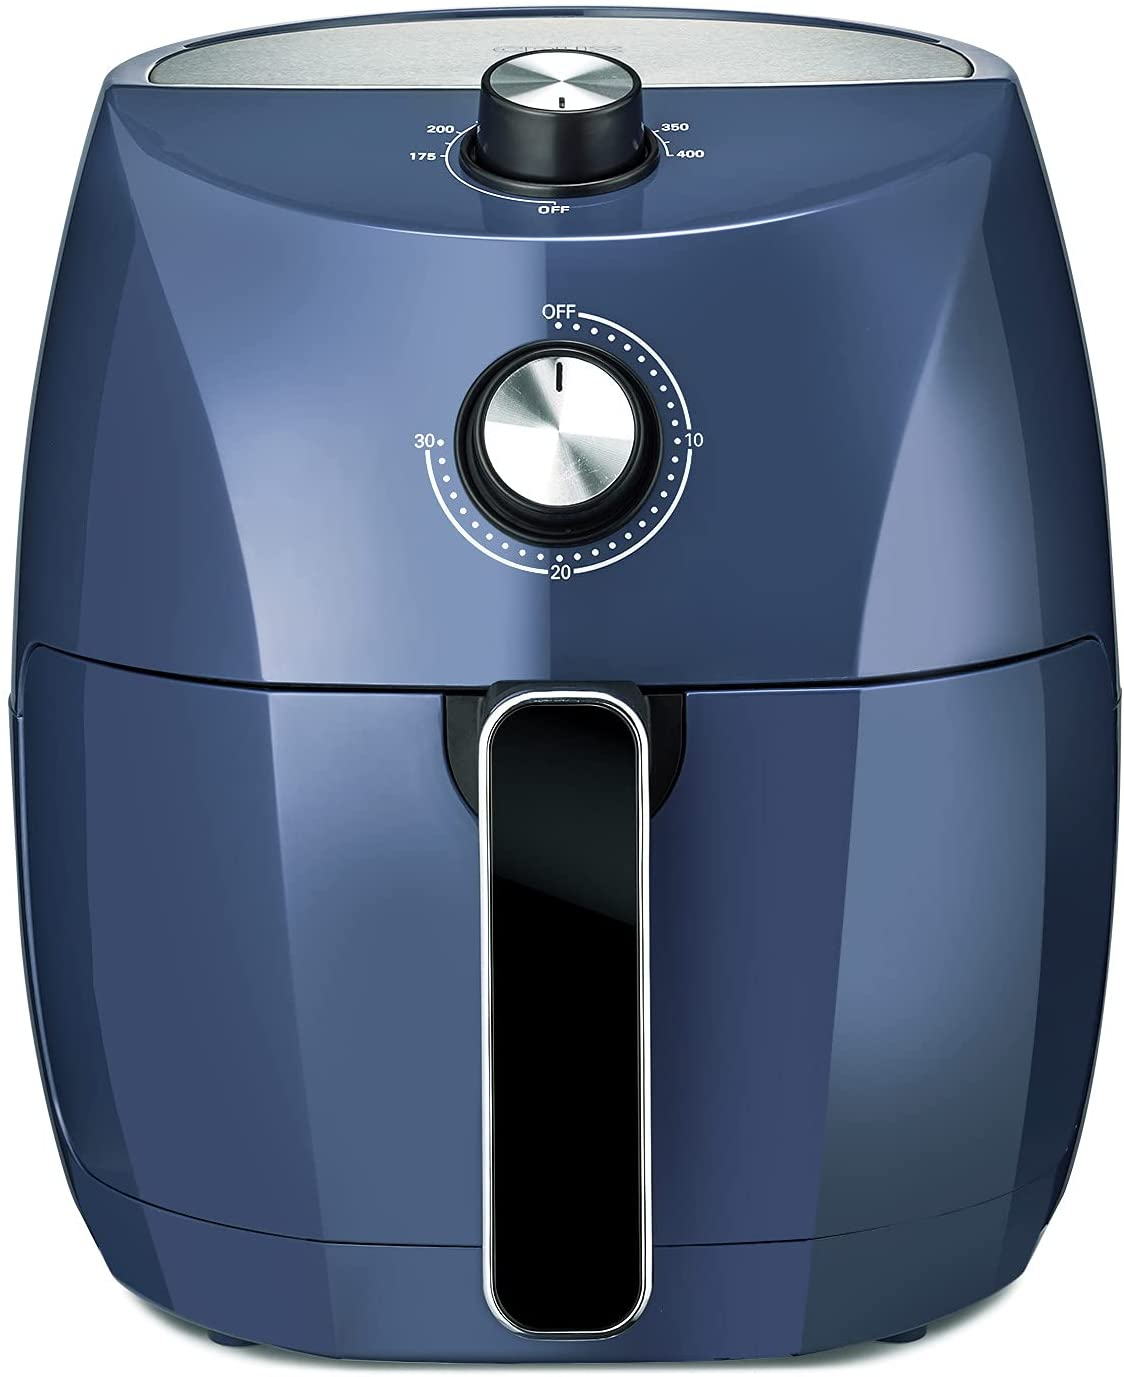 Crux 3.7QT Manual Air Fryer, Faster Pre-Heat, No-Oil Frying, Fast Healthy Evenly Cooked Meal Every Time, Dishwasher Safe Non Stick Pan and Crisping Tray for Easy Clean Up, Stainless Steel/Blue